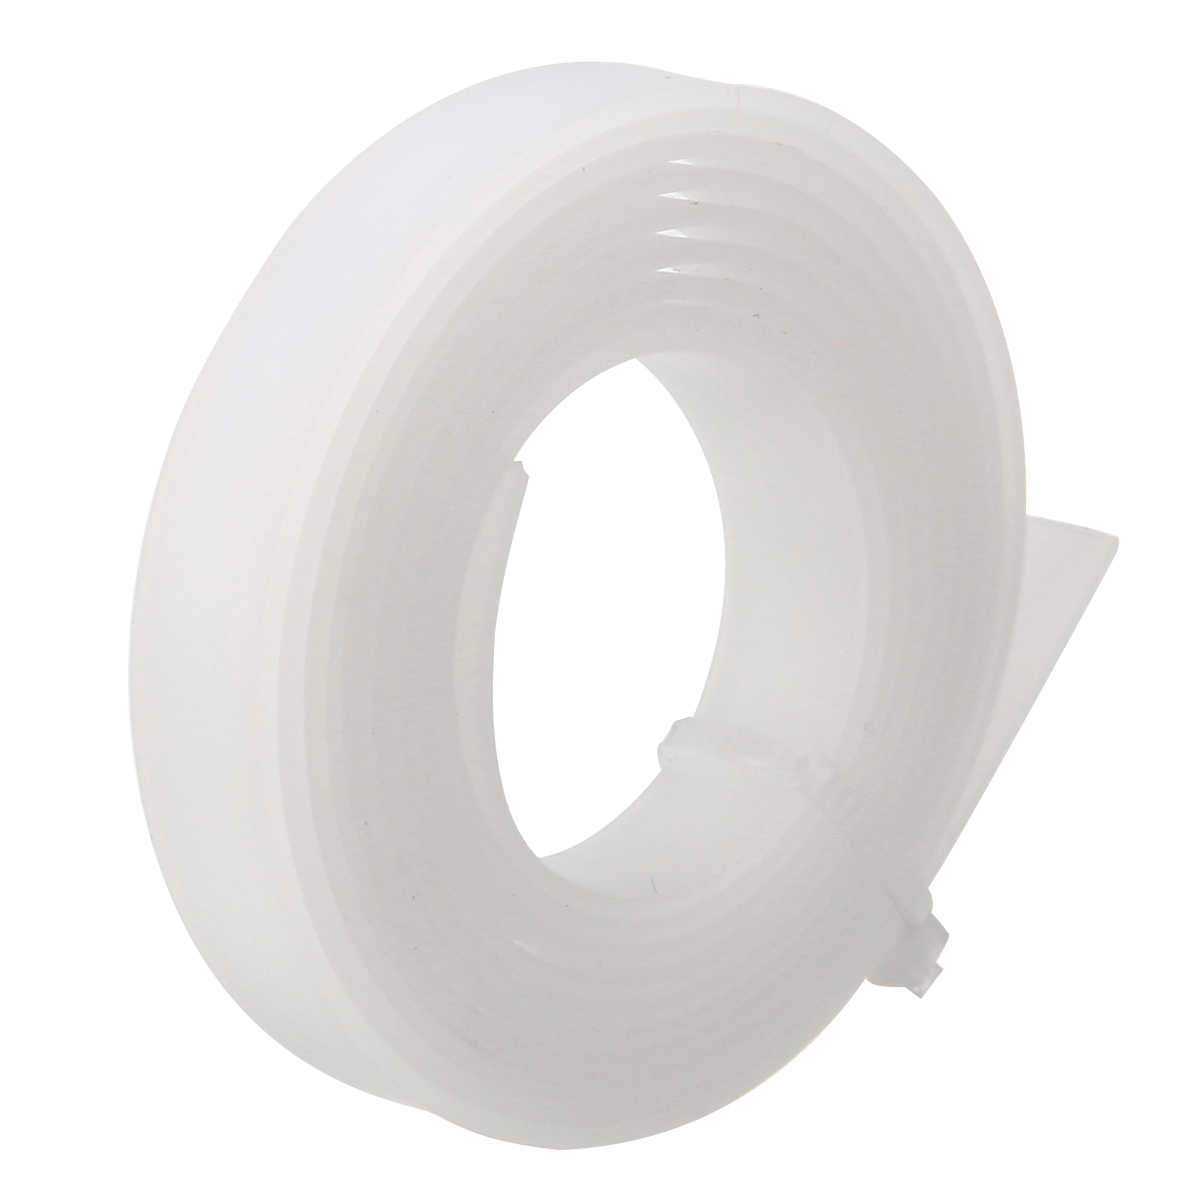 1 Roll Cutting Blade Strip Penjaga Perlindungan Tape Vinyl Cutter Strip 100 Cm X 8 Mm